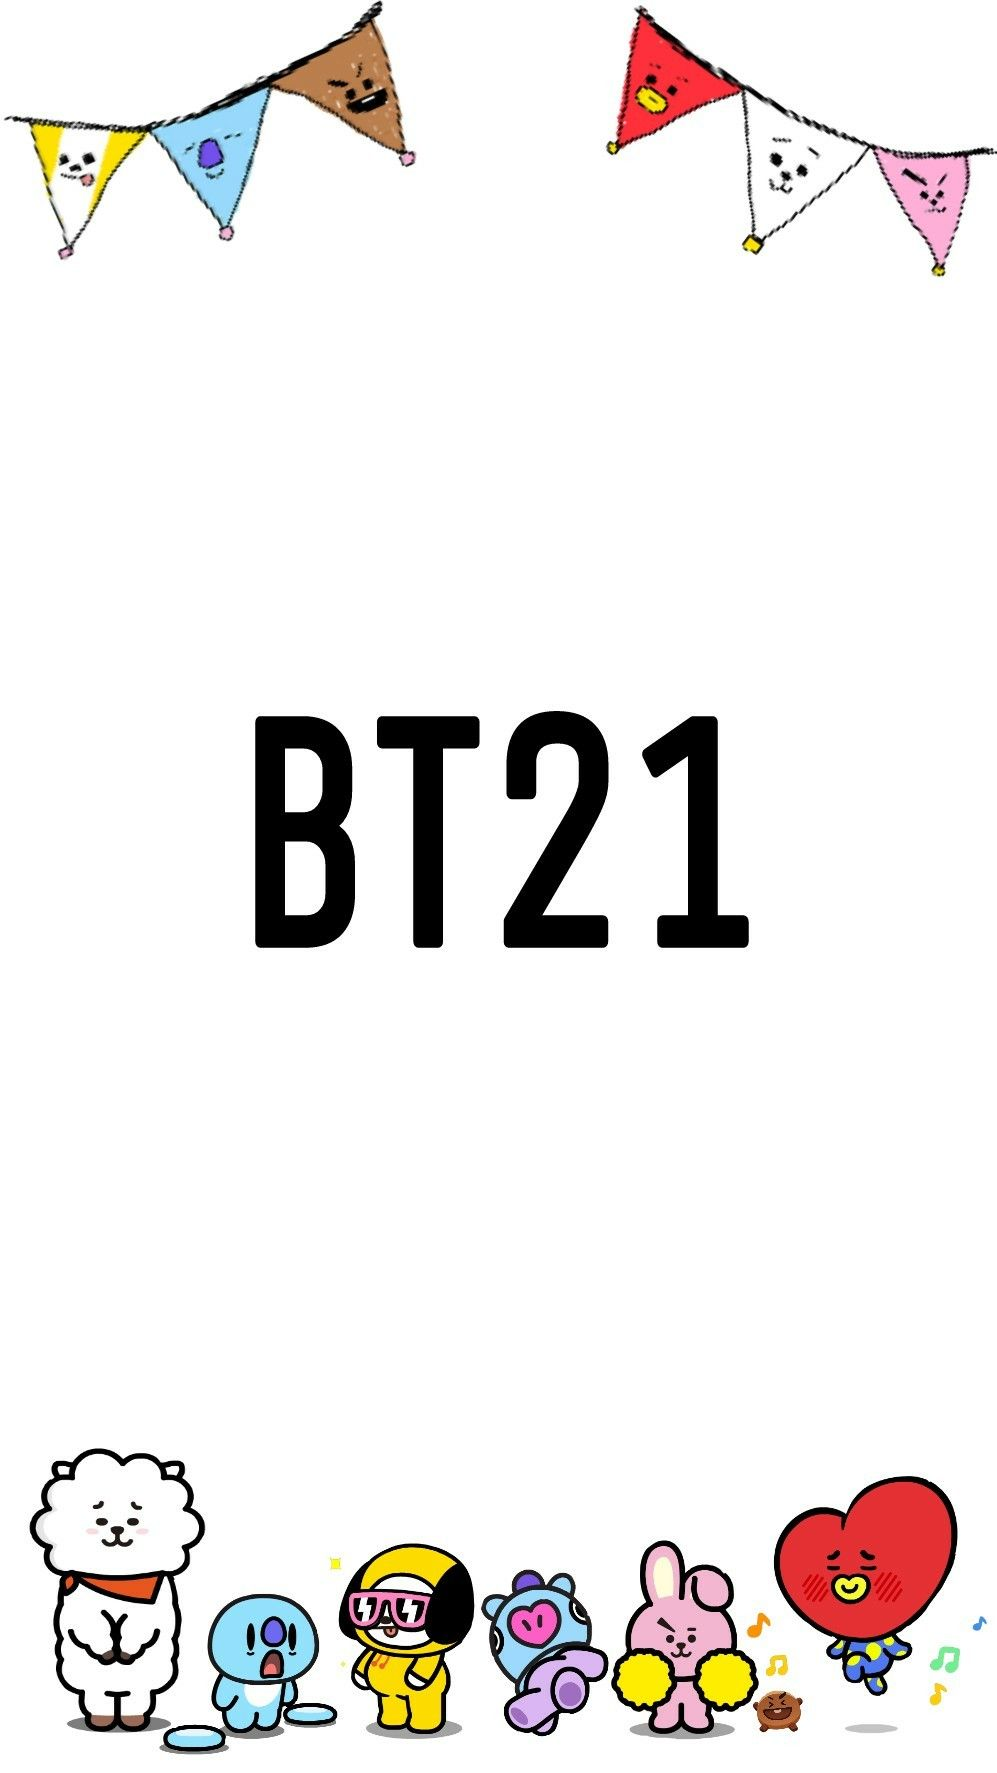 Bts BT21 Wallpaper Kpop pics Pinterest BTS 997x1773